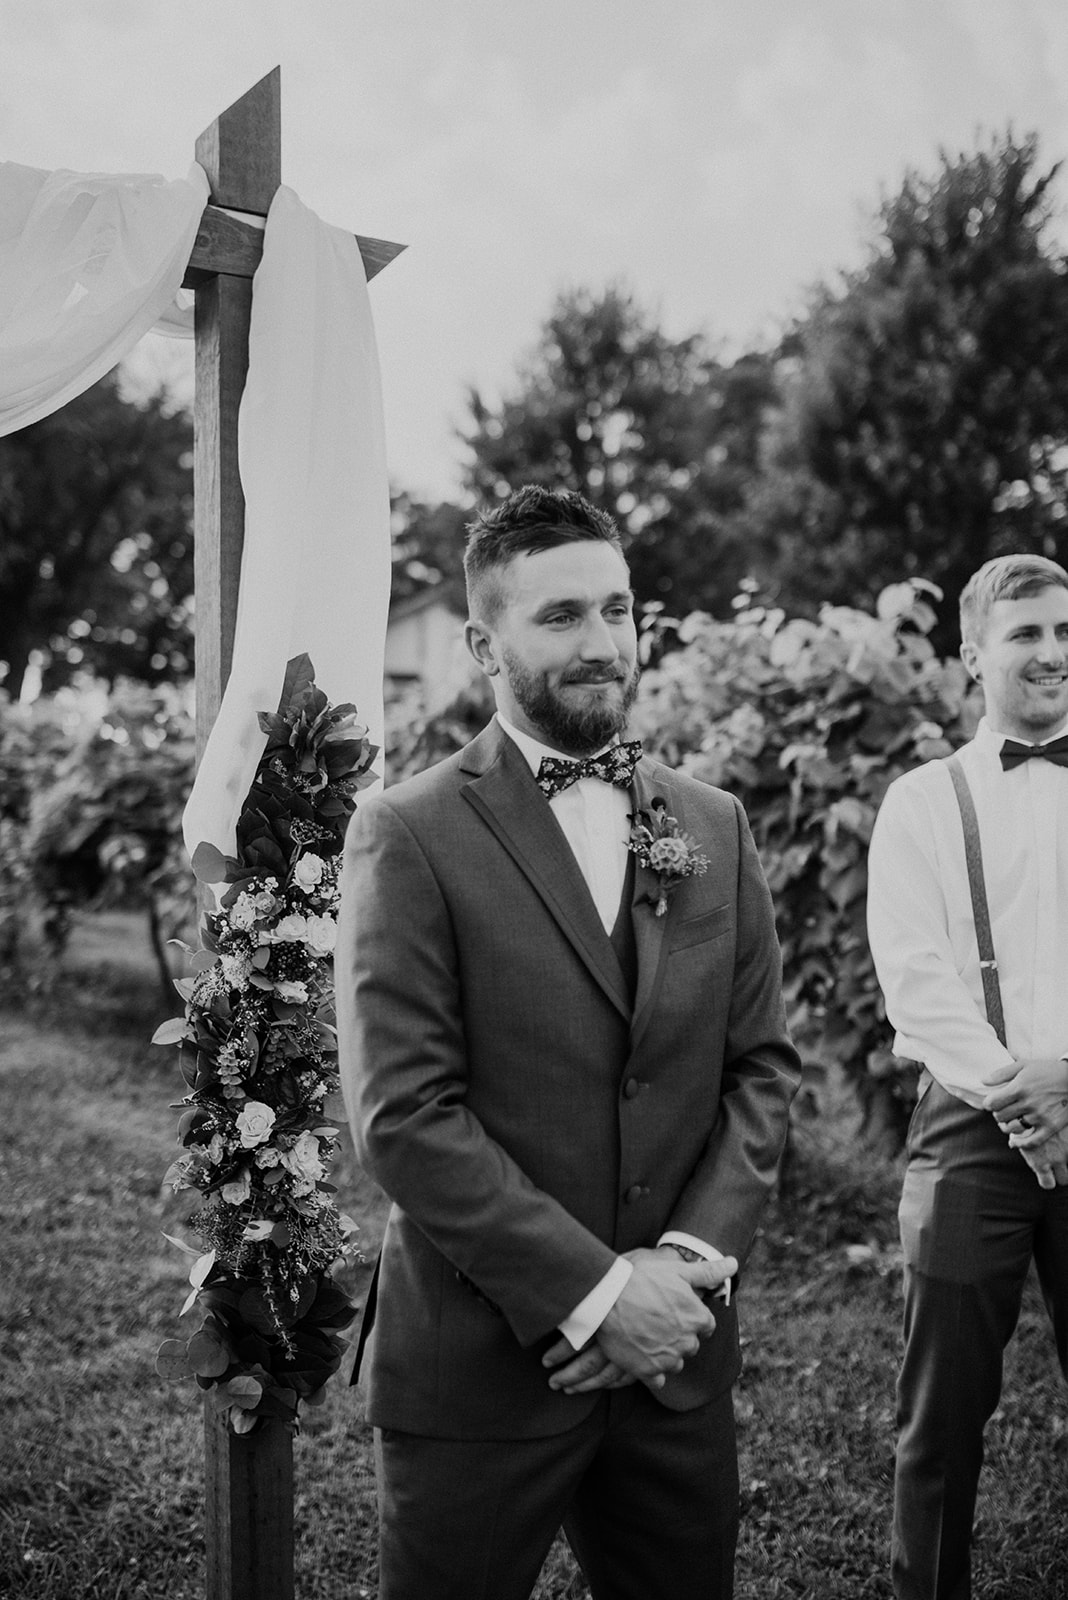 overthevineswisconsinwedding_0620.jpg